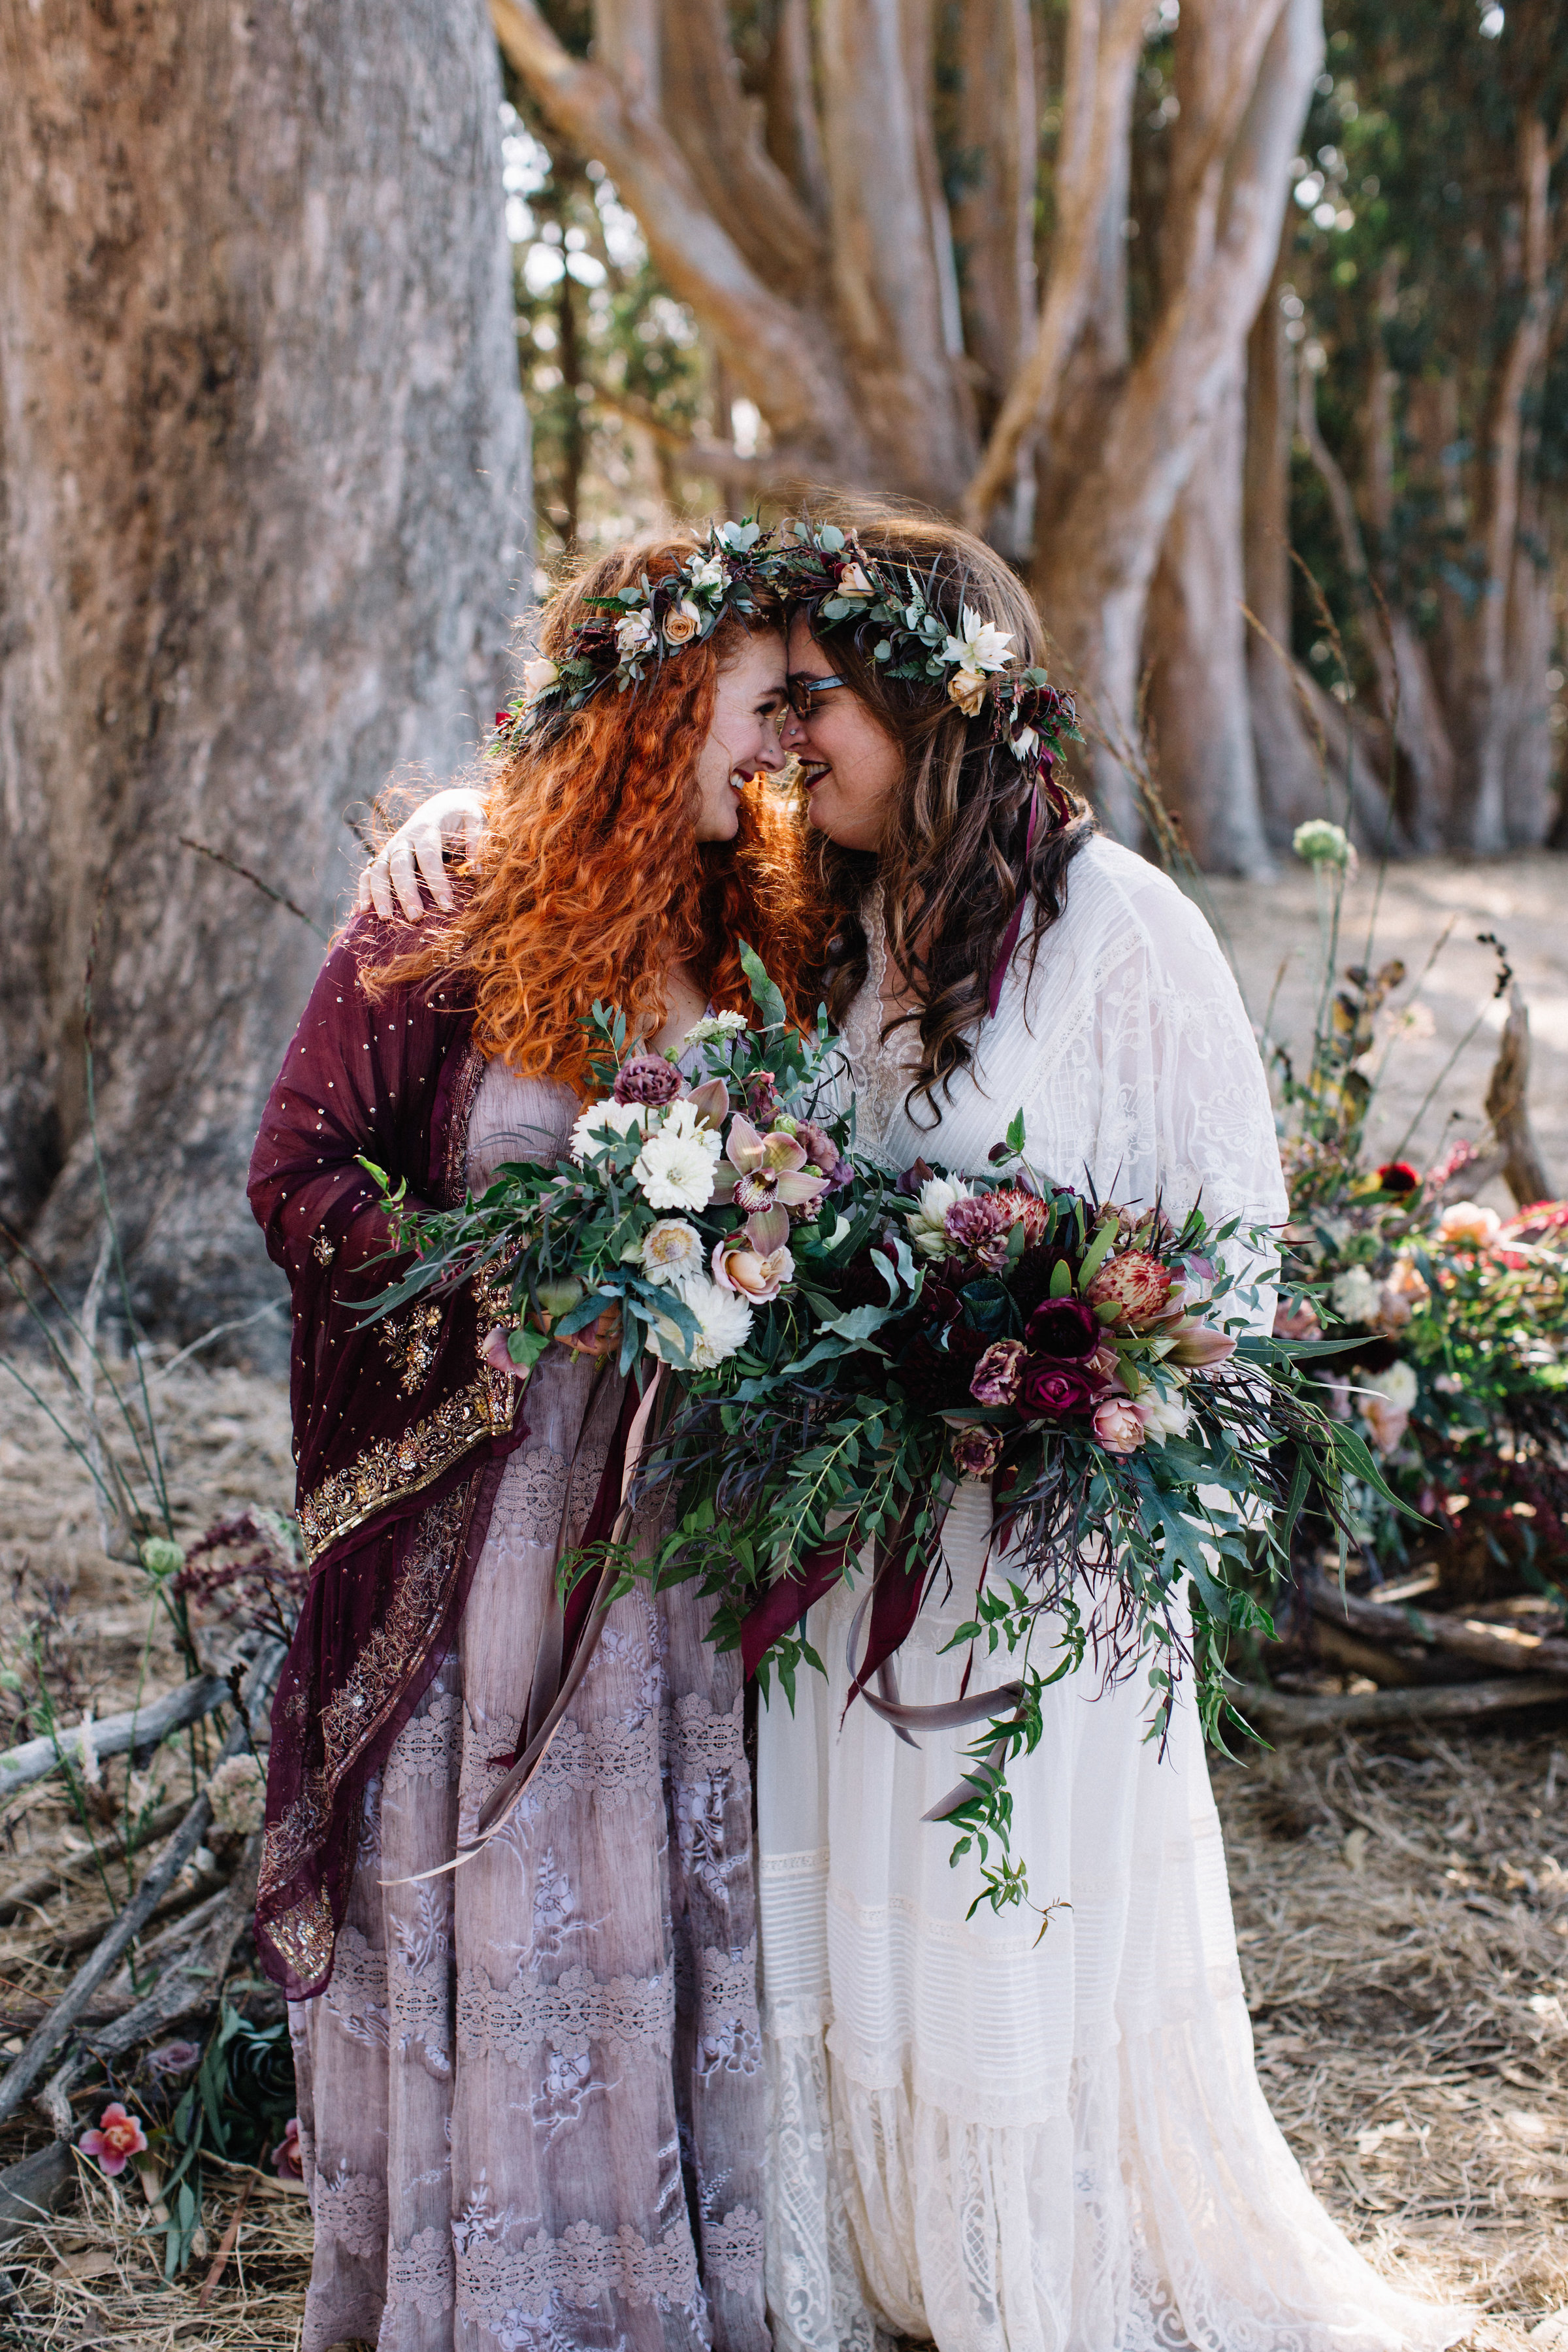 Elegant floral crowns and bouquets by Venn Floral with garden roses, hellebores, jasmine, and ferns at an outdoor wedding photographed by Lucille Lawrence at Straus Home Ranch in Marshall, California on the TOmales Bay.